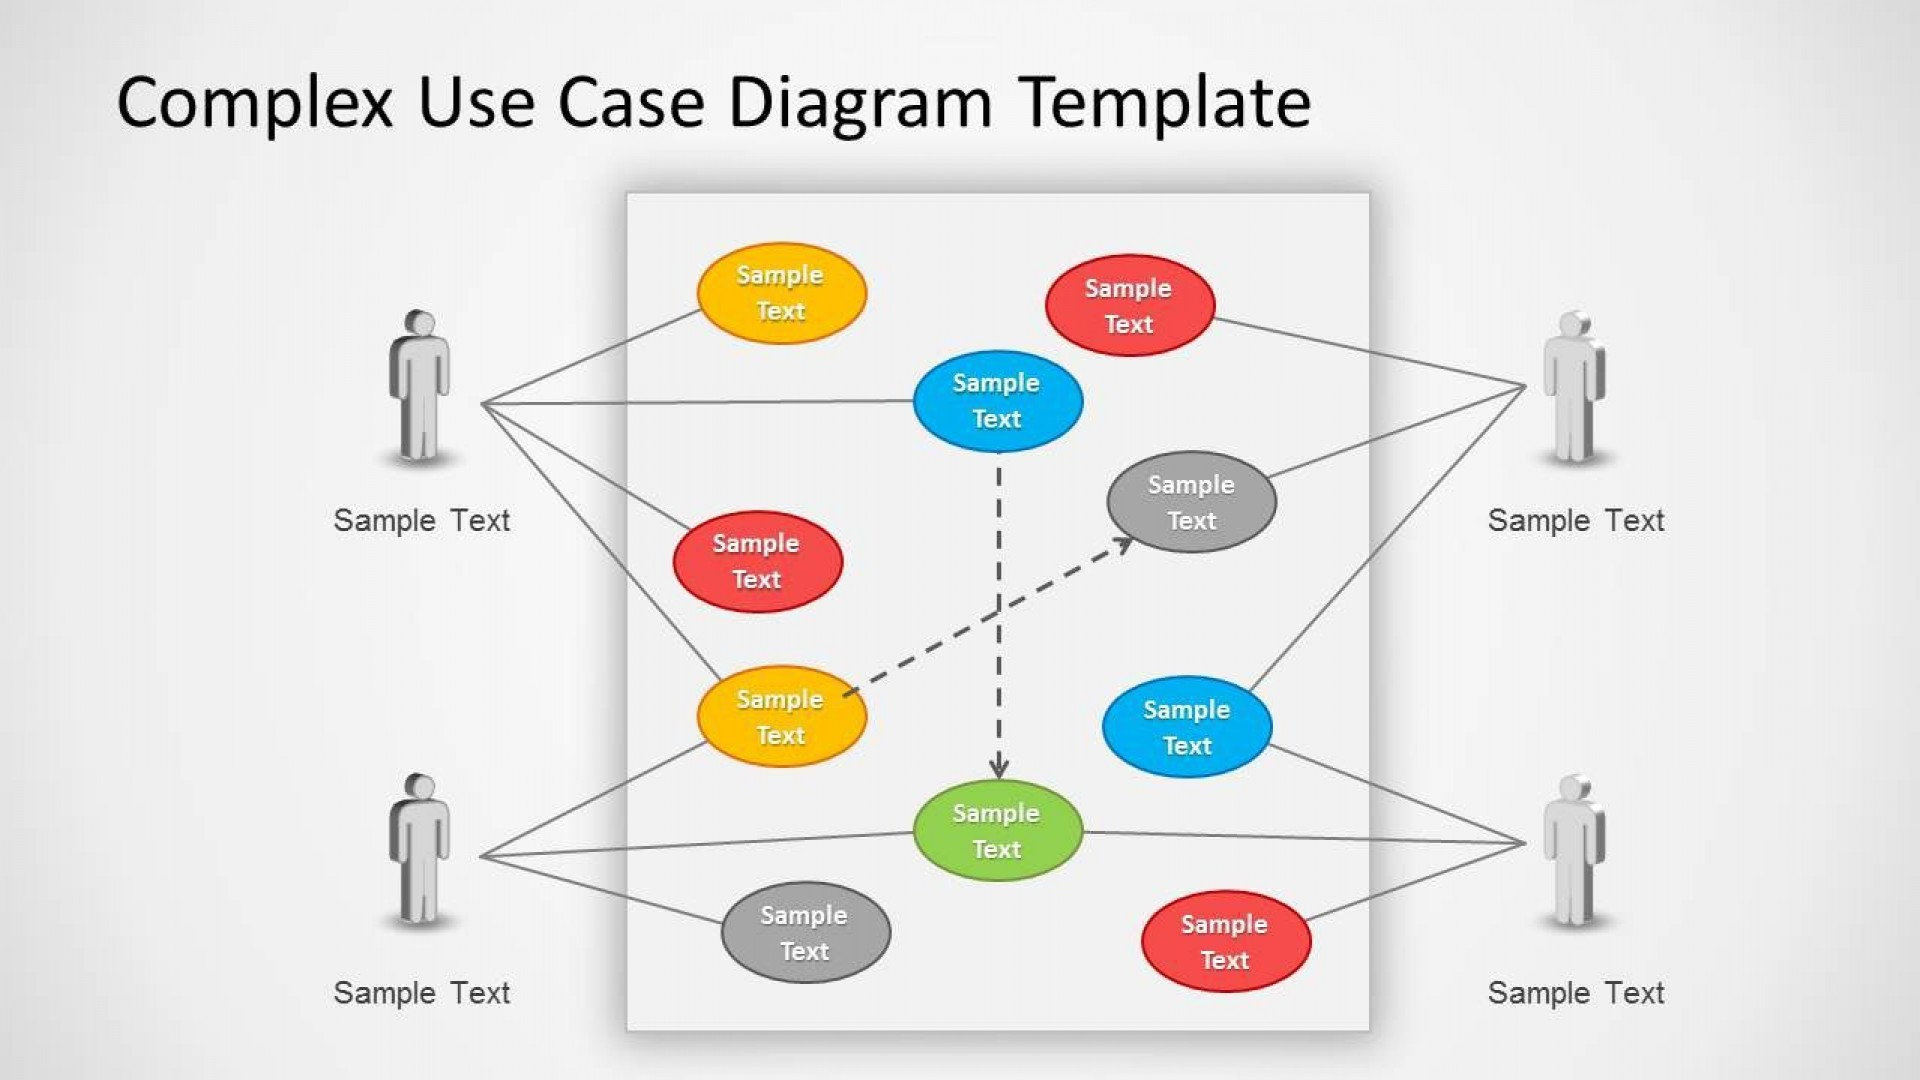 001 Wonderful How To Draw Use Case Diagram In Microsoft Word 2007 Sample 1920